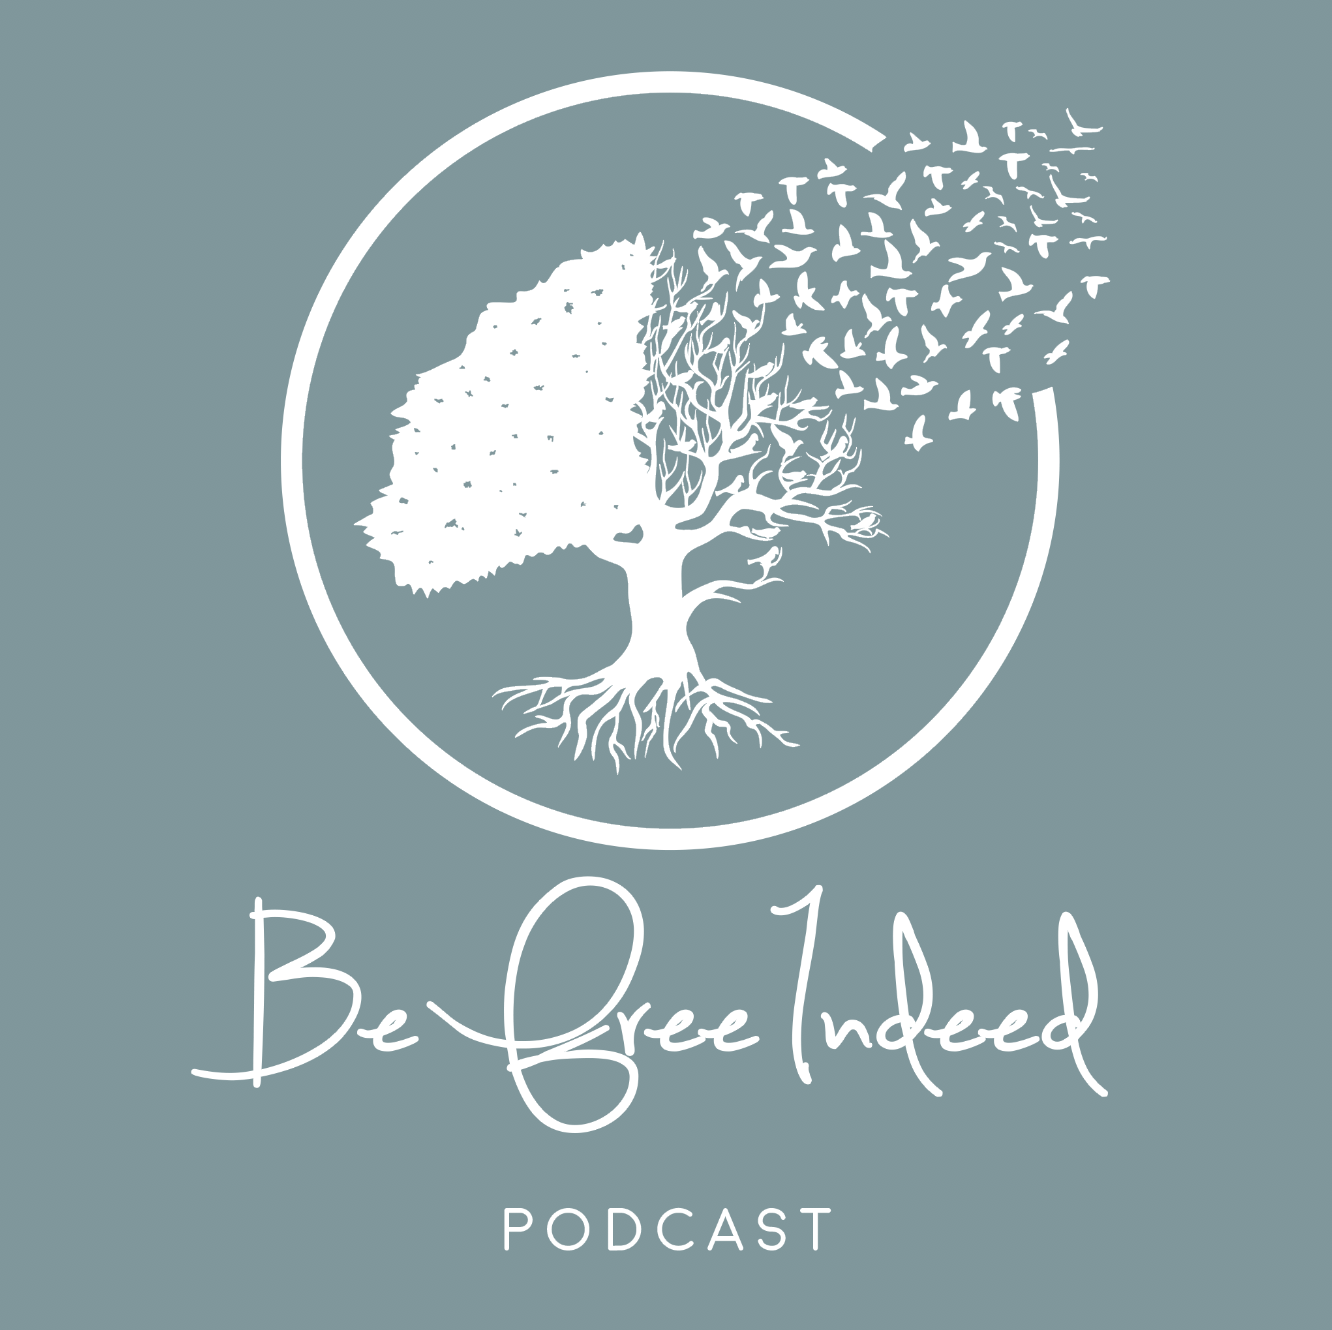 Be Free Indeed Podcast   Engineer | Co-Producer | Consultant > 2018  Podcast Launch Package | Marketing Plan  On-Site Engineering, Producing, and Editing. Market planning for content distribution and launch.    www.befreeindeed.net